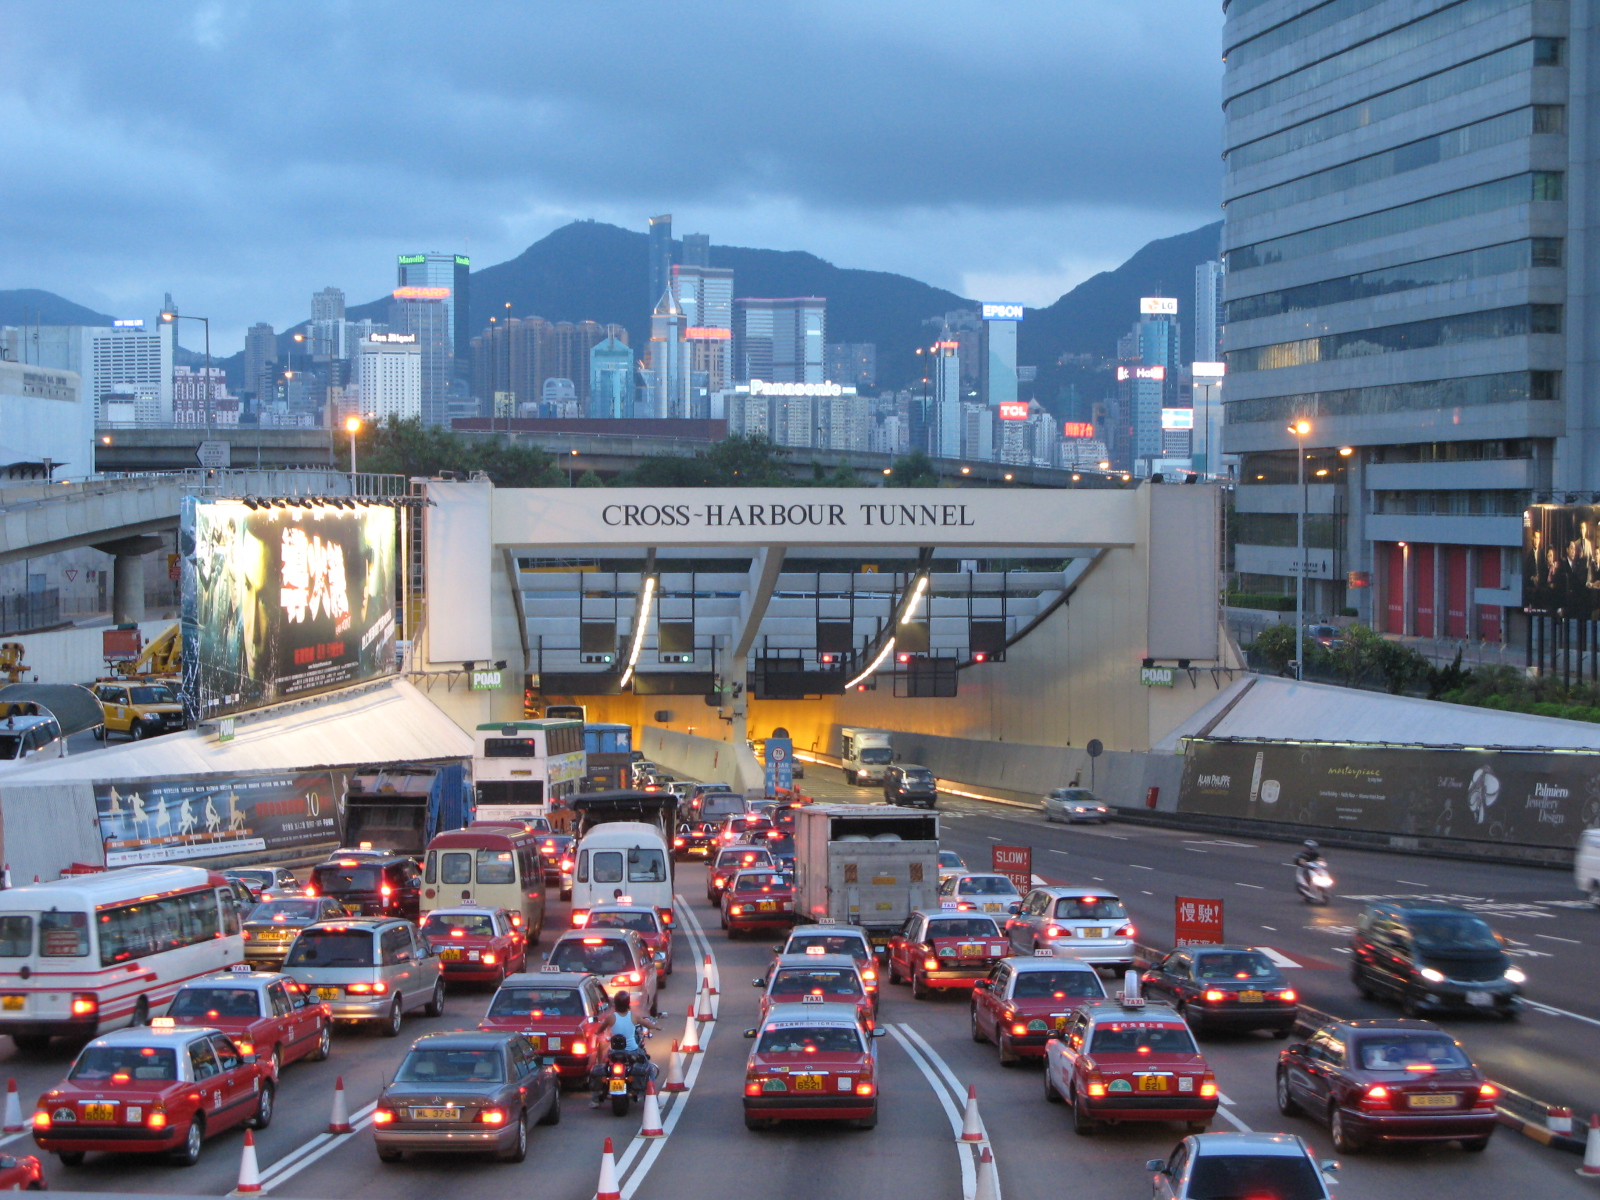 File:HK Cross Harbour Tunnel.jpg - Wikipedia, the free encyclopedia